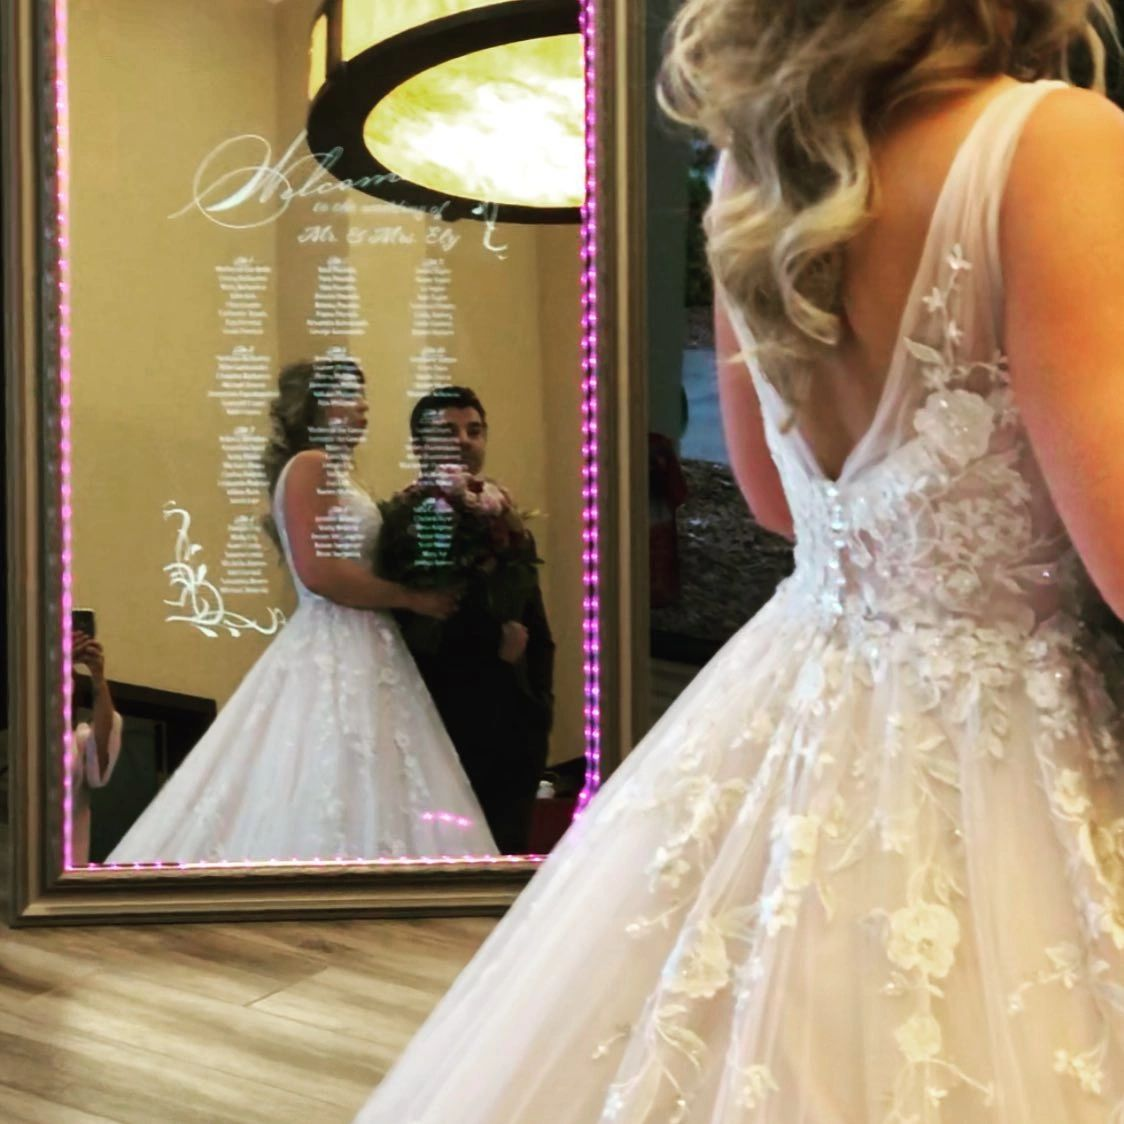 bride interacting with the mirror photo booth as she walks down the aisle to start her new life as 1